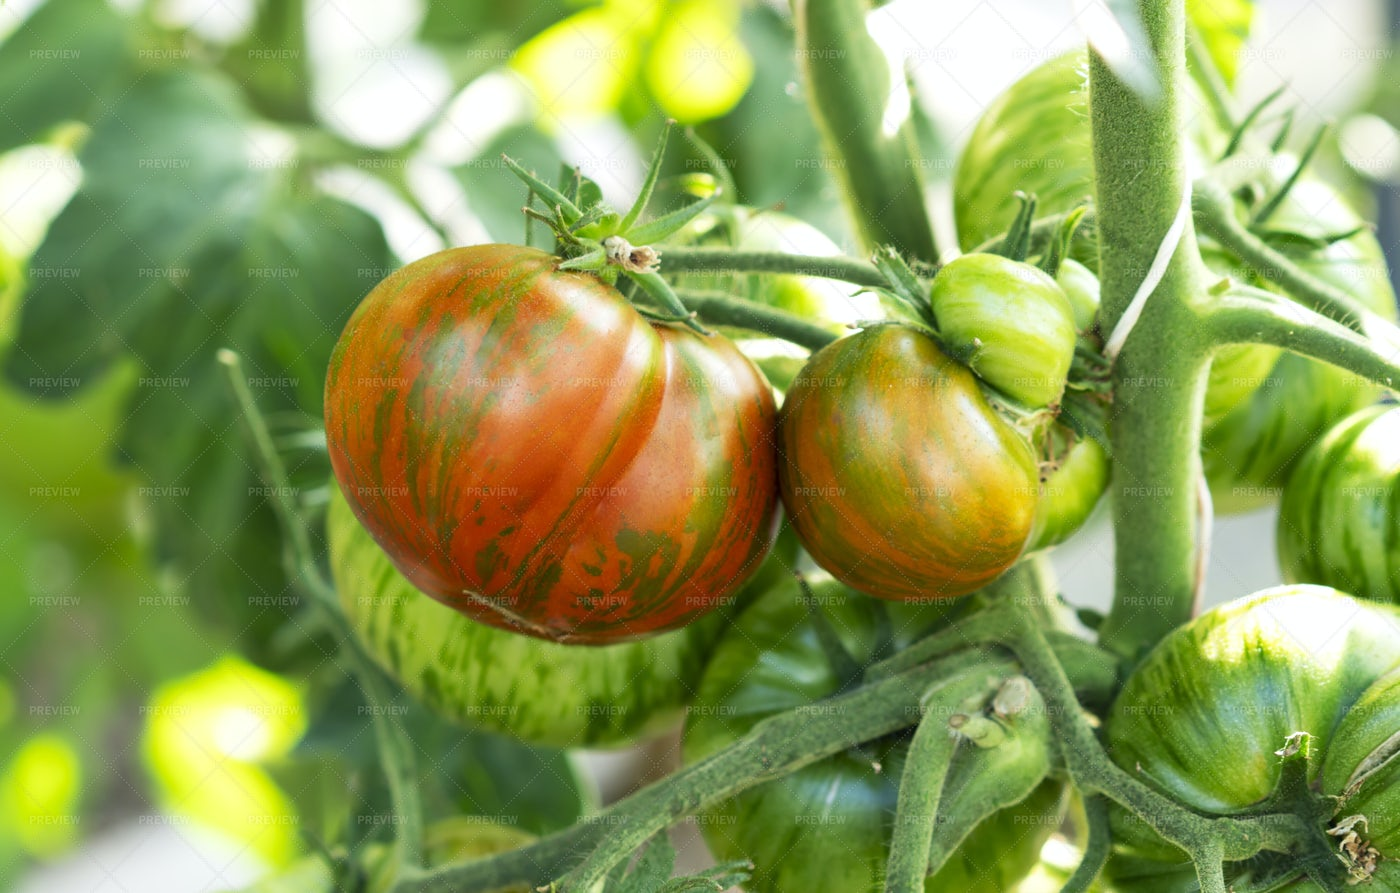 Growing Red Striped Tomatoes: Stock Photos